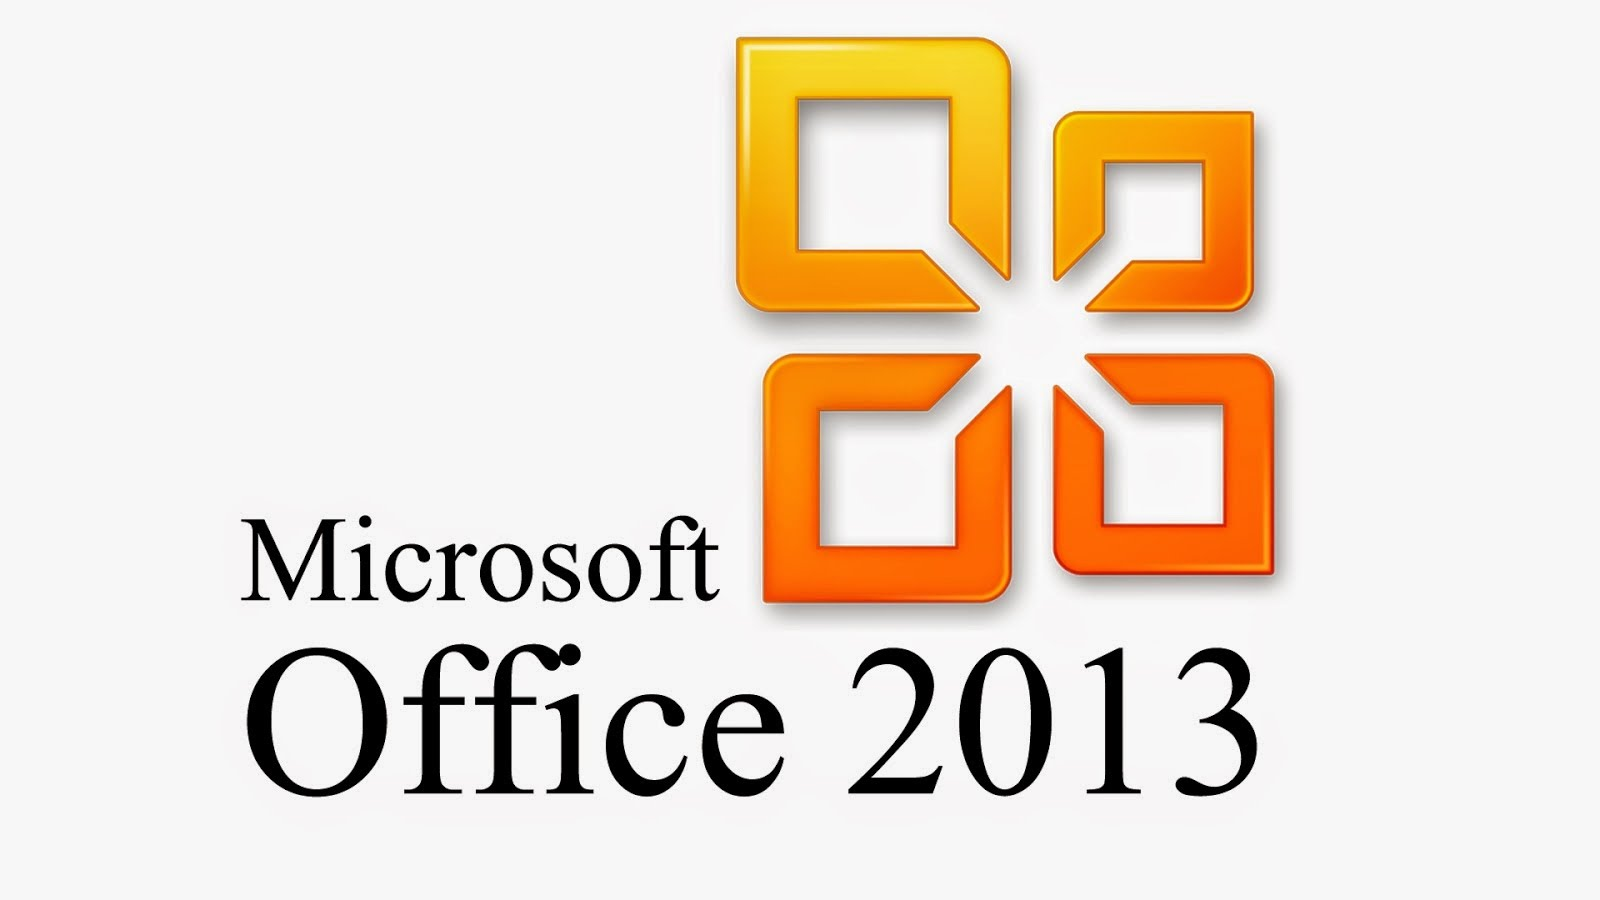 Microsoft Office 2013 Free Download Offline Installer - Offline